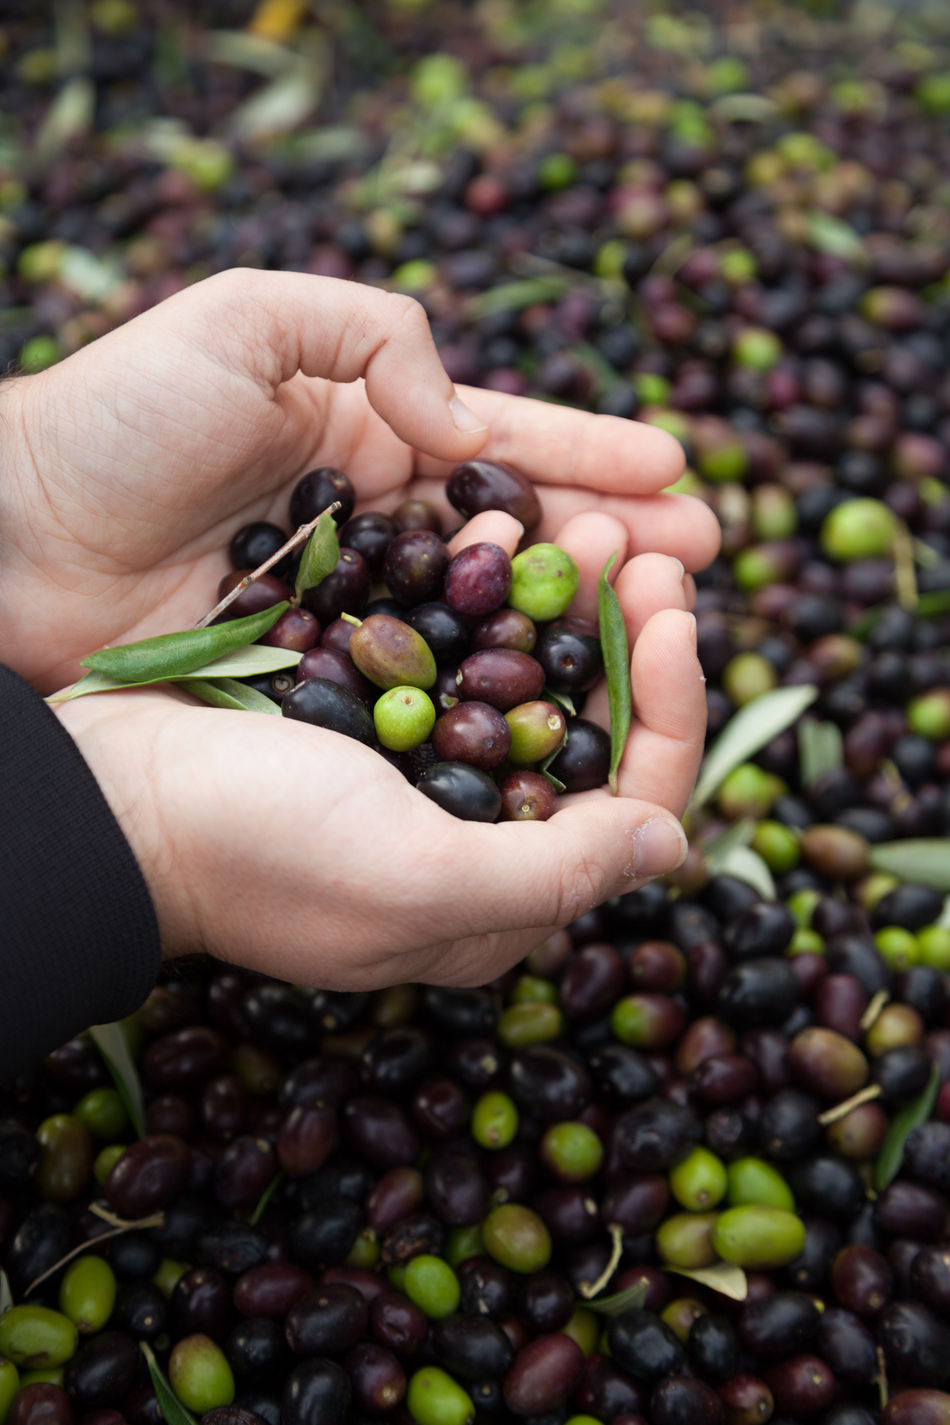 Agriculture Close-up Food Freshness Fruit Grape Hands Healthy Eating Holding Human Body Part Human Hand Lifestyles Olive Oil Olive Tree Olives Olives Leafs Outdoors